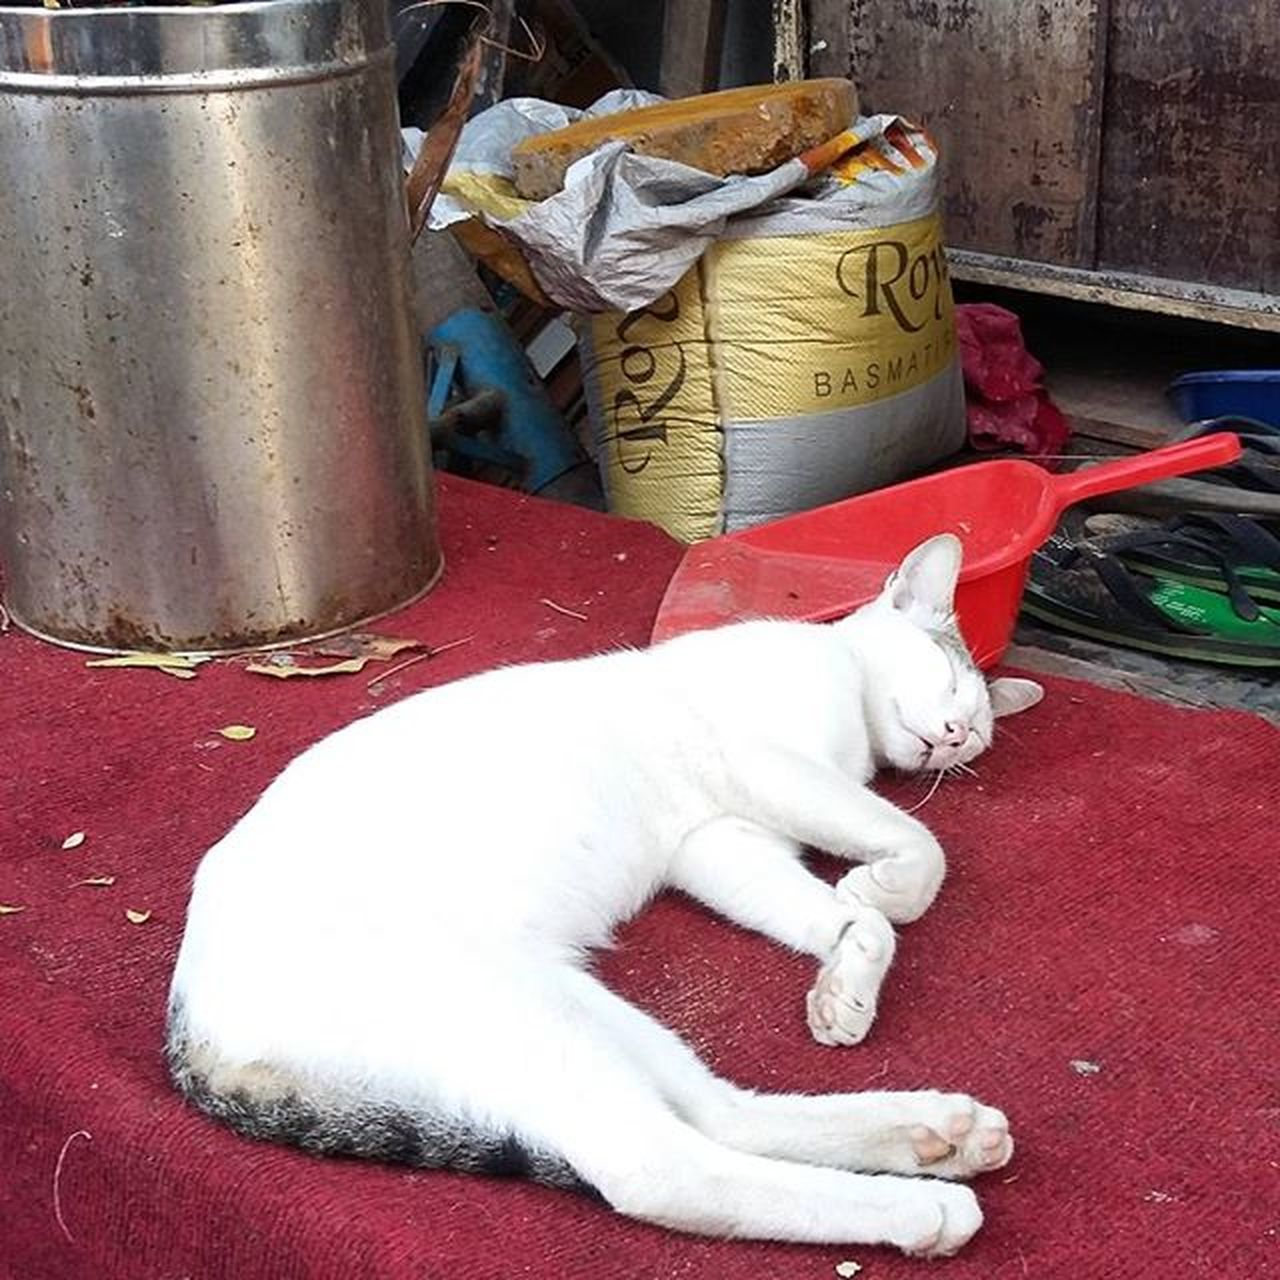 pets, domestic animals, animal themes, domestic cat, one animal, mammal, feline, day, outdoors, no people